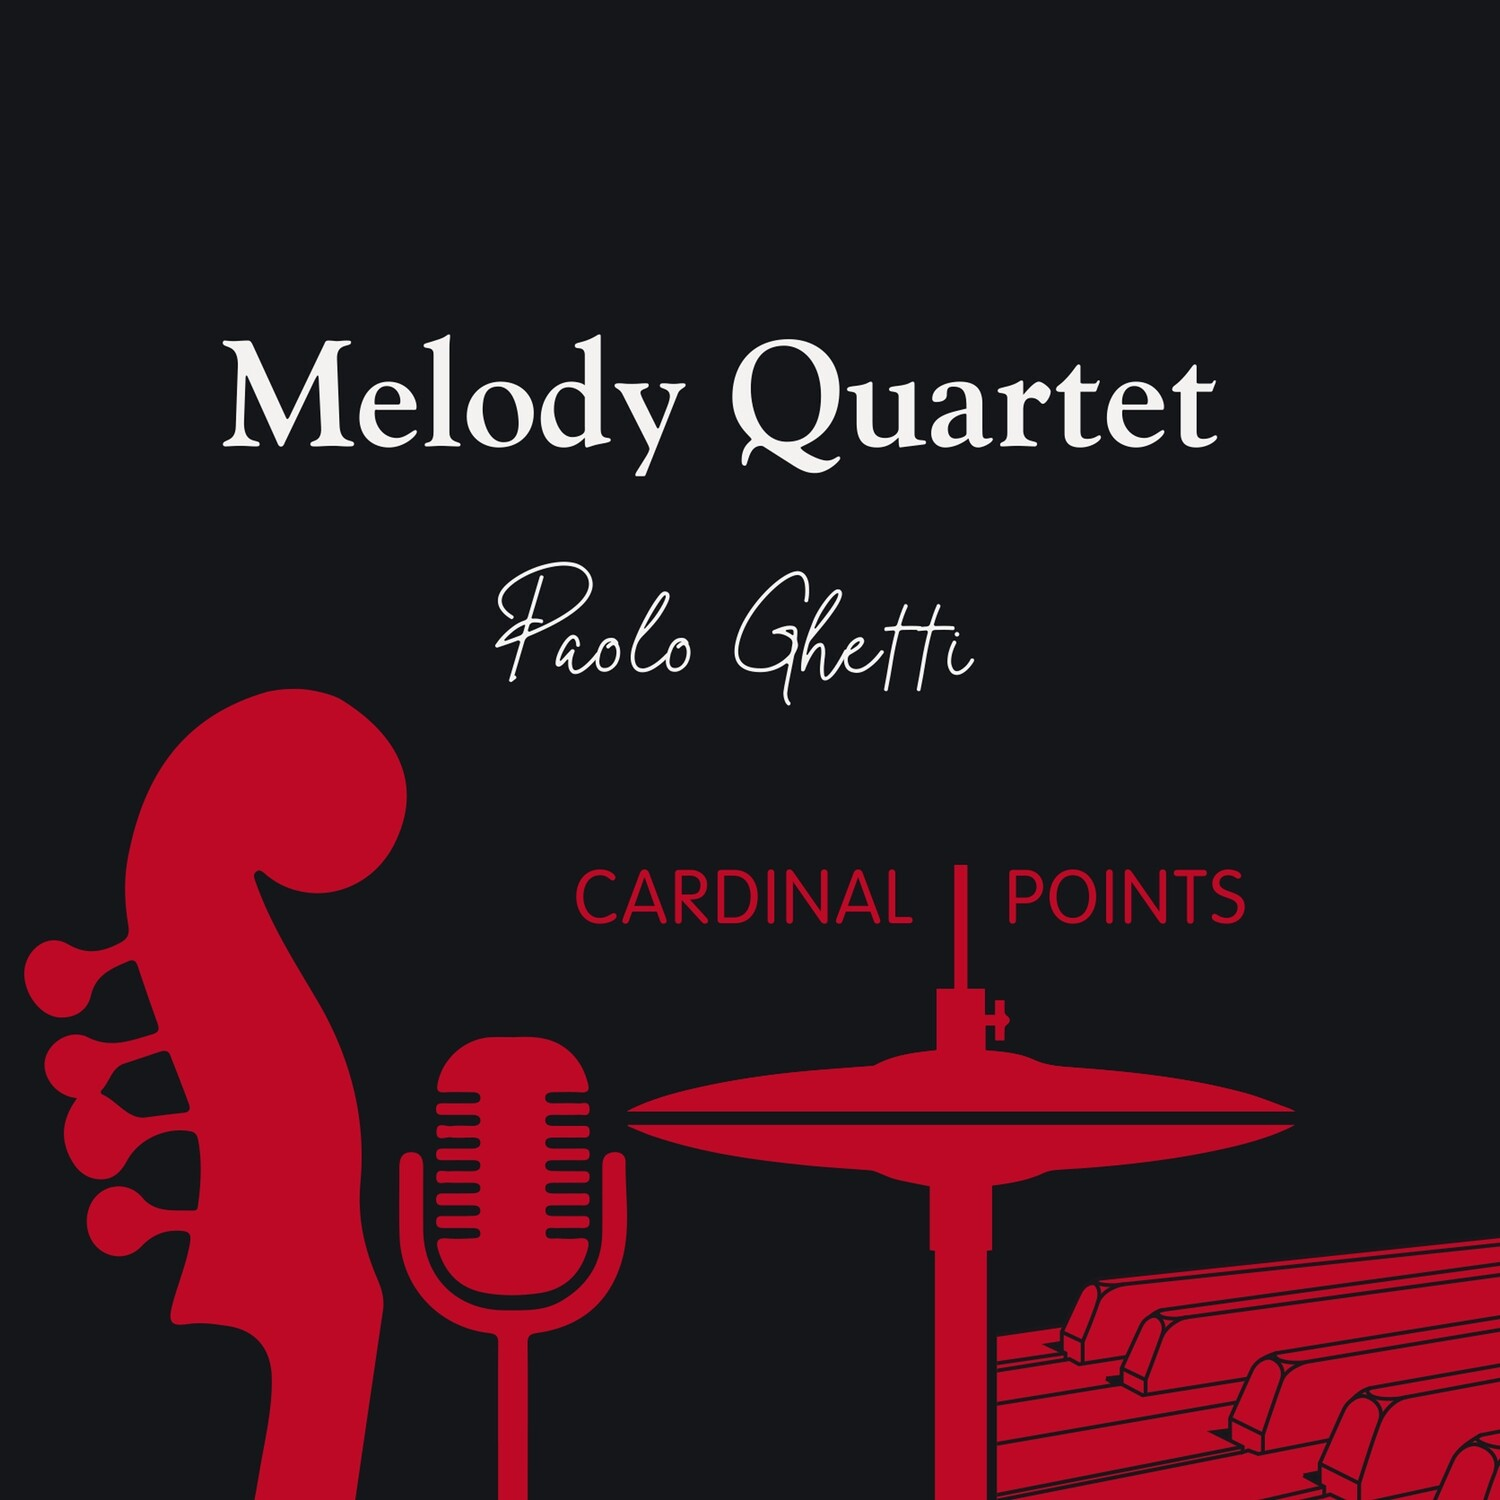 Paolo Ghetti & Melody Quartet «Cardinal Points»